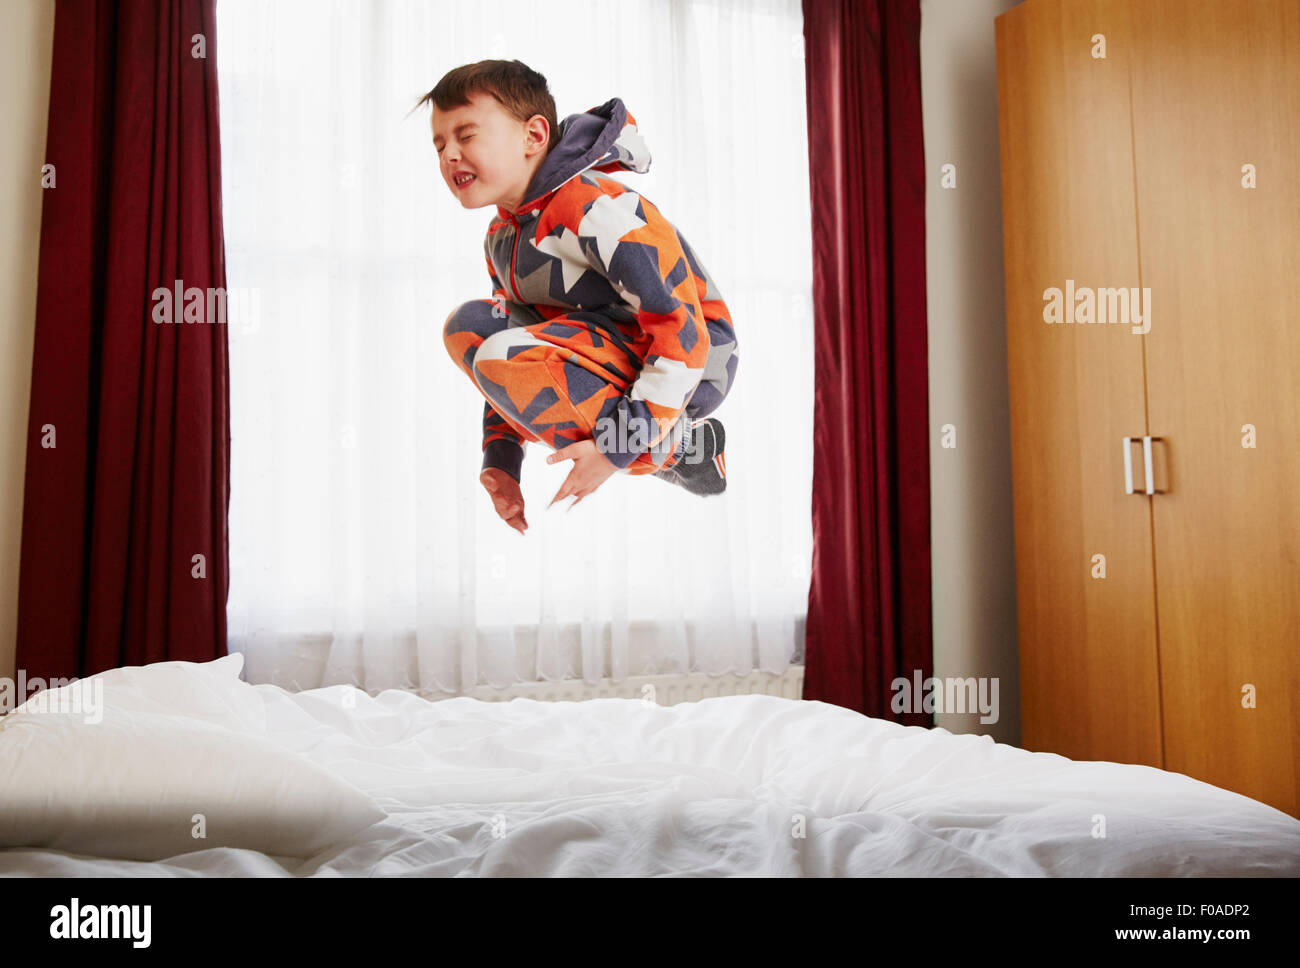 Young boy jumping on bed Banque D'Images